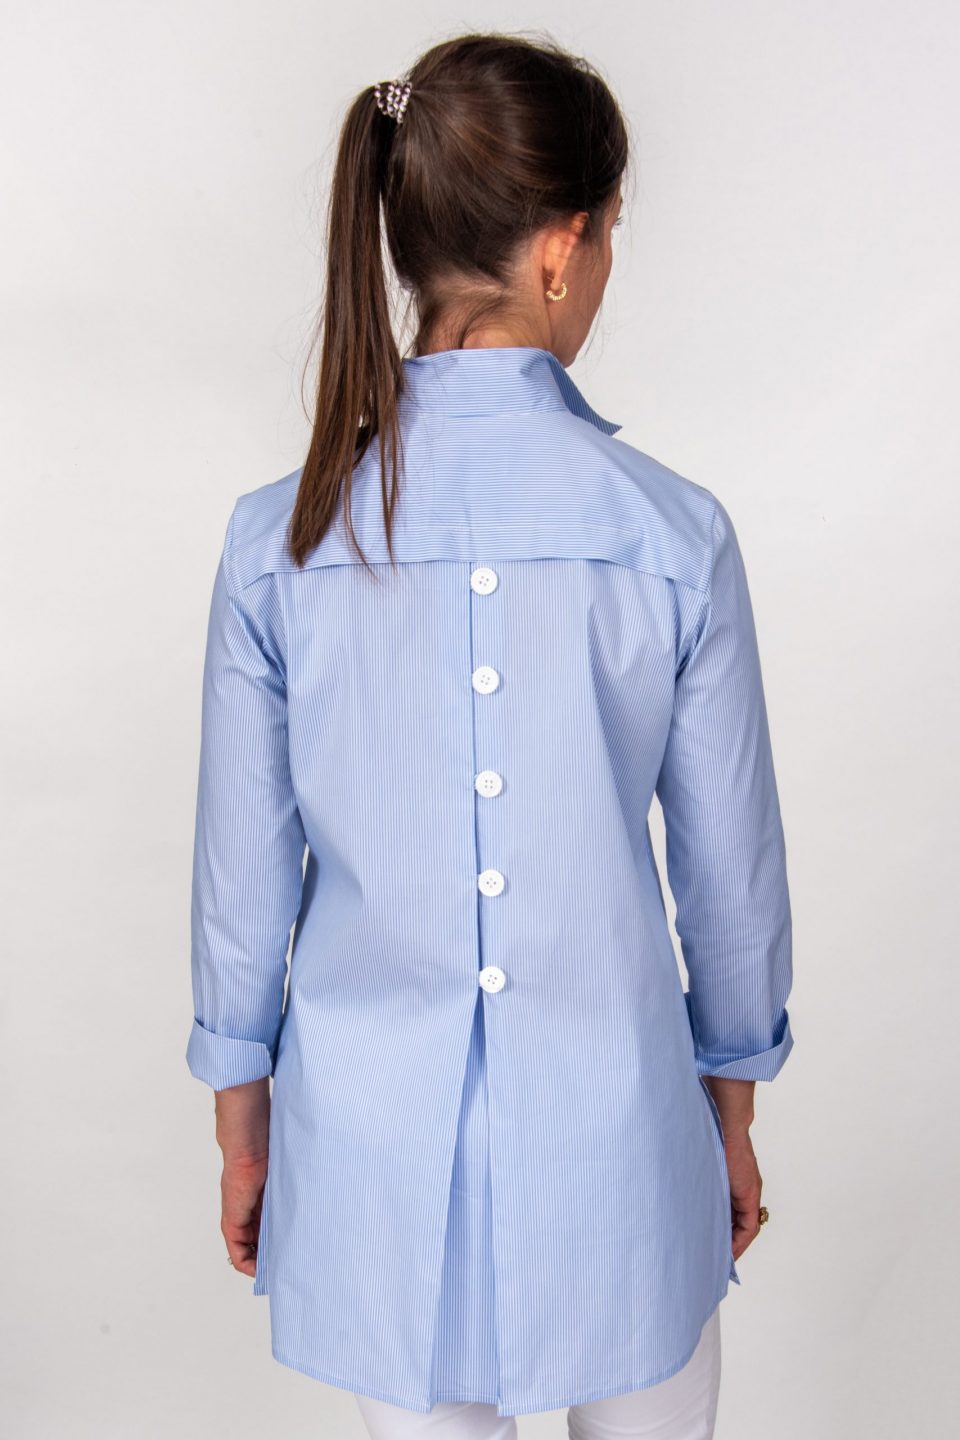 Eve 3/4 Sleeve Tunic, Back Buttons Tiny Blue Stripe Back- Diane Bailey Designs